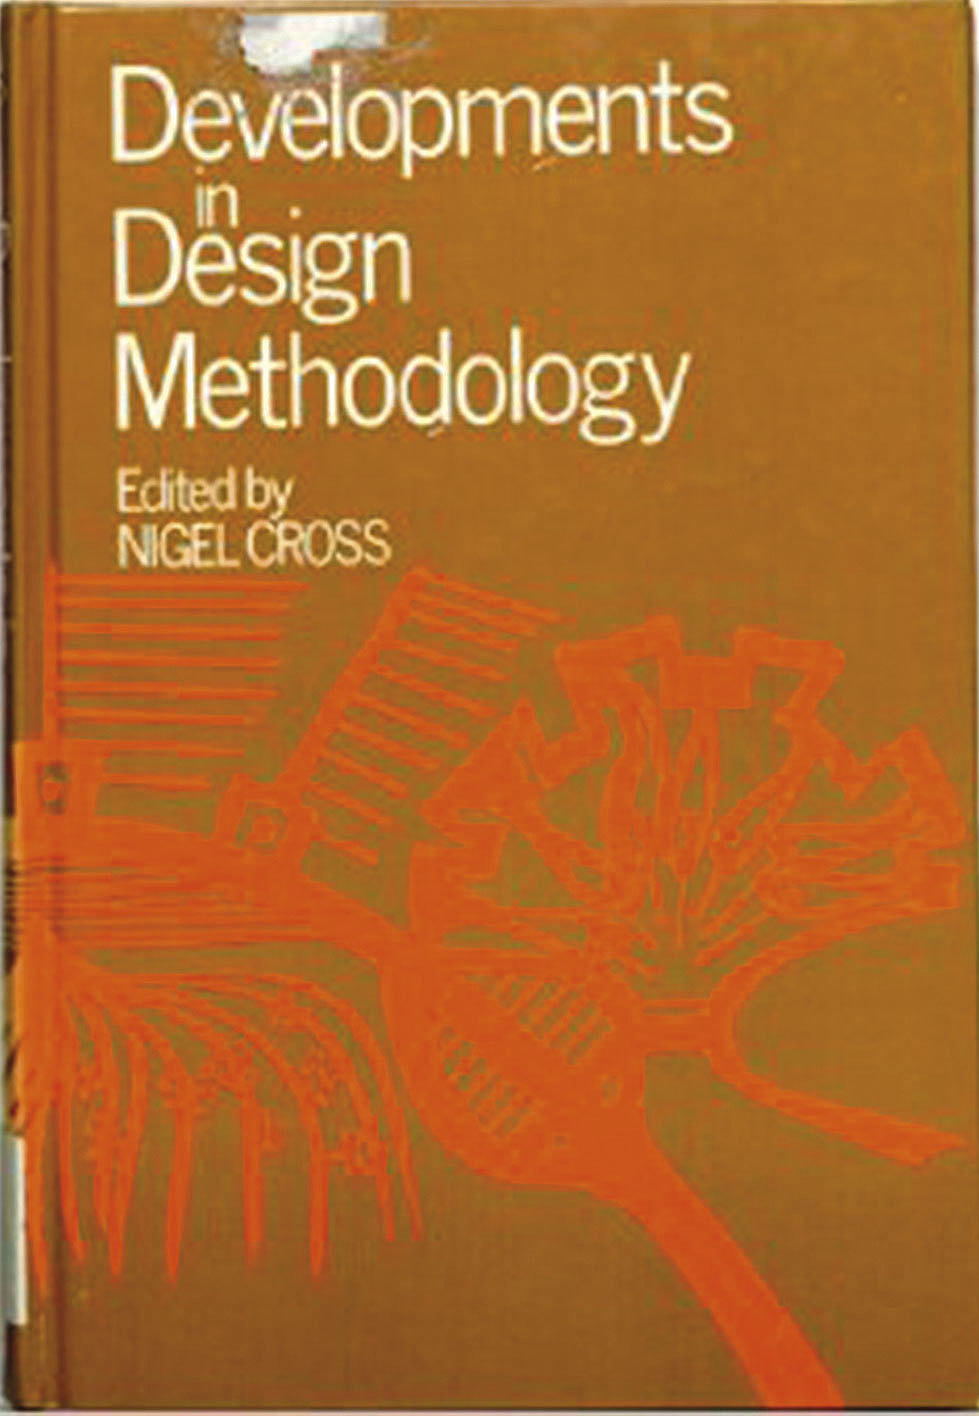 Nigel Cross' første introduksjon til Research by Design-begrepet: boken Developments in Design Methodology fra 1984.